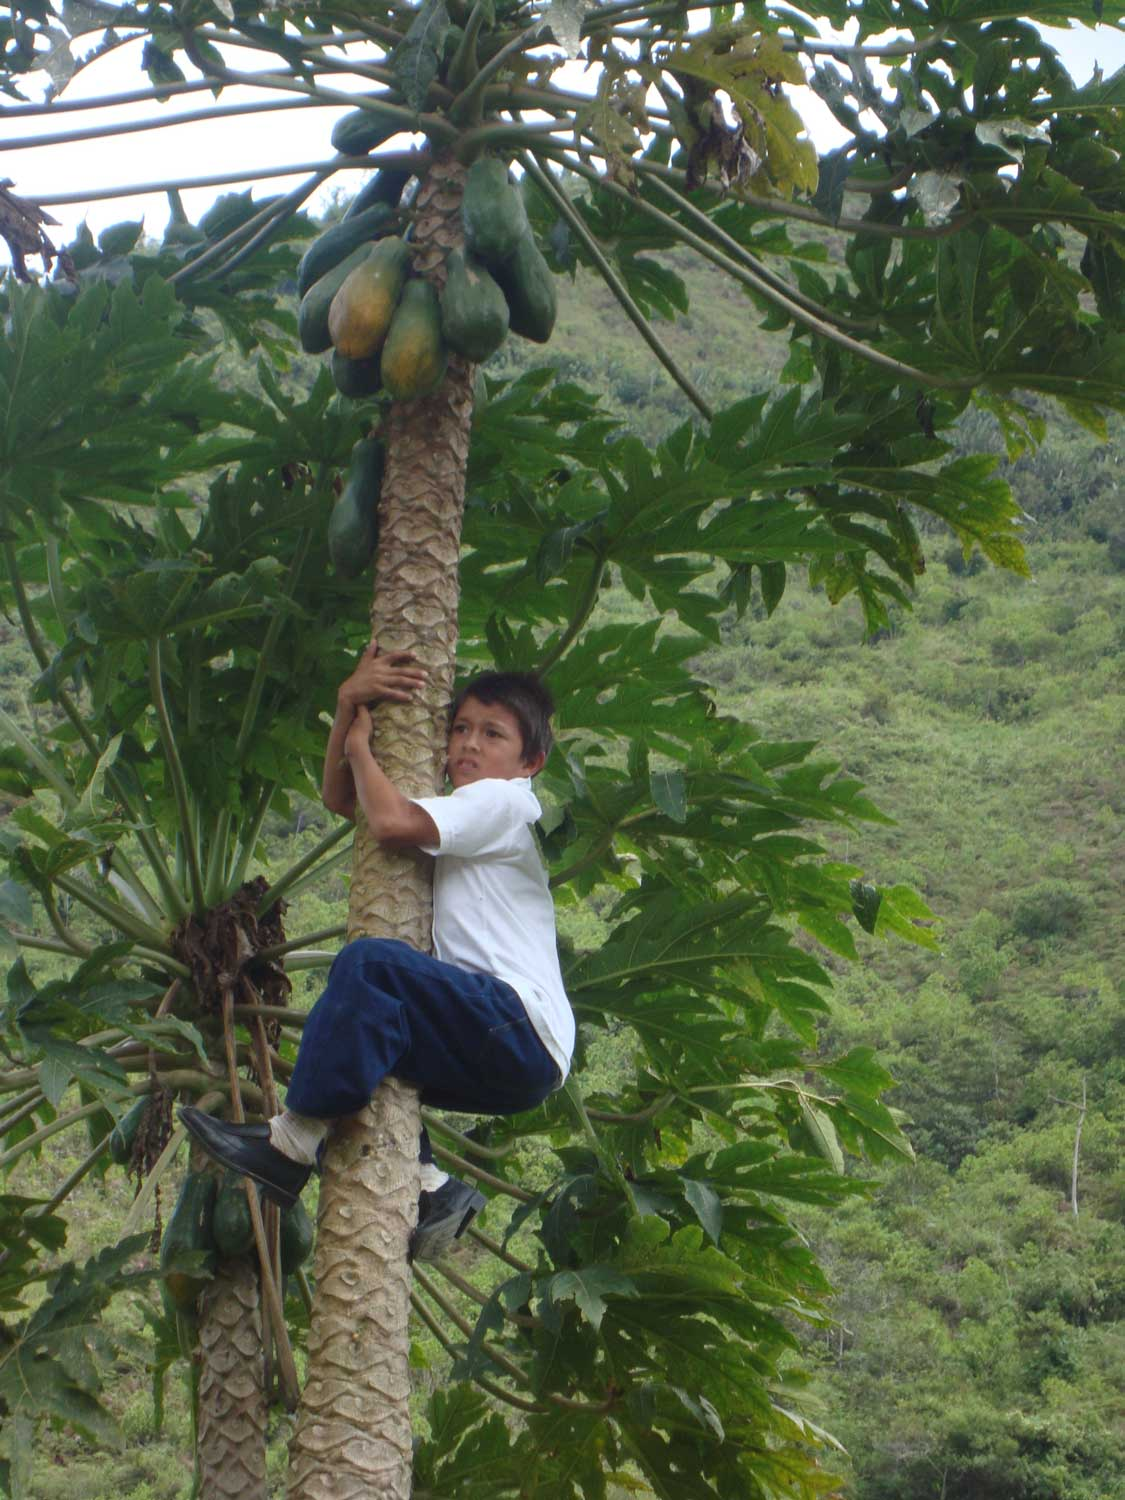 A young boy climbs a papaya tree